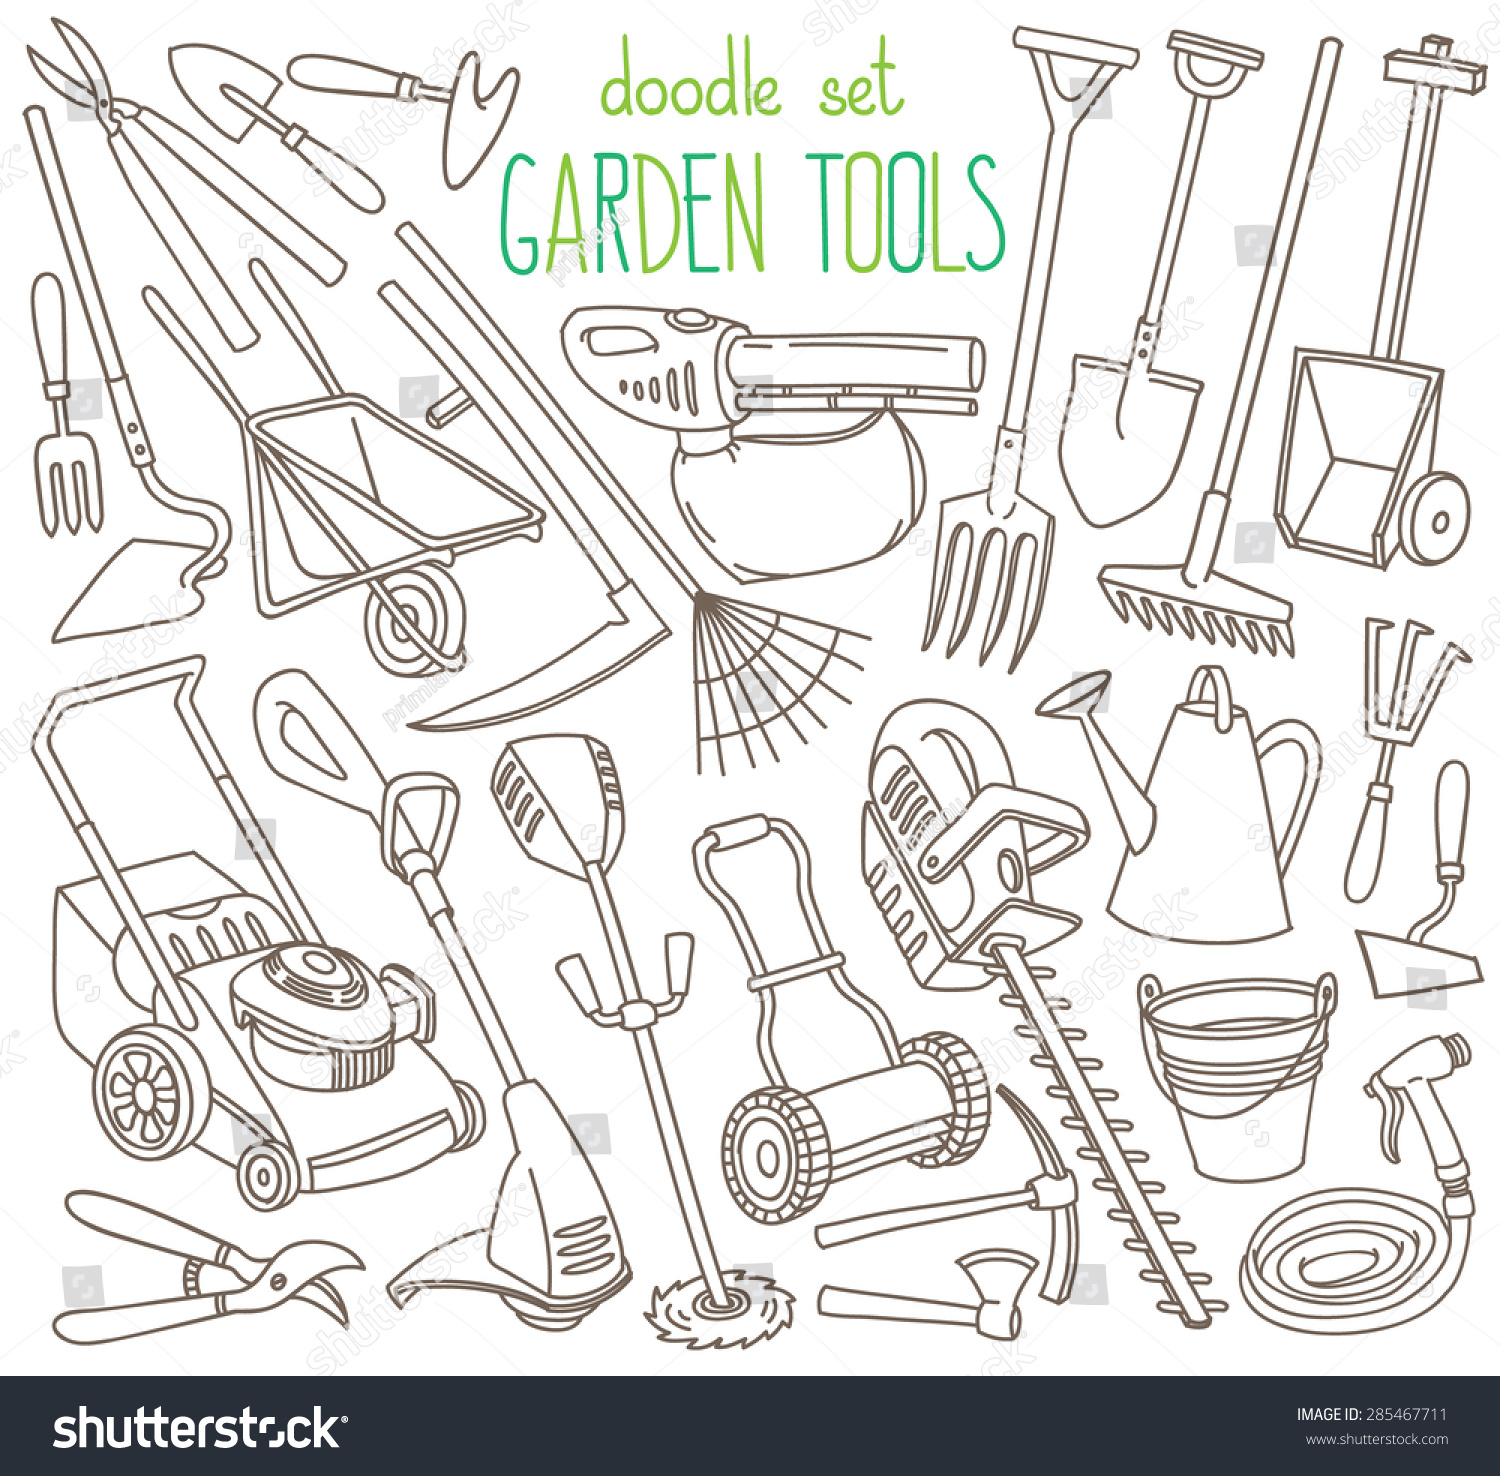 Garden tools doodle set various equipment stock vector for Gardening tools drawing with names